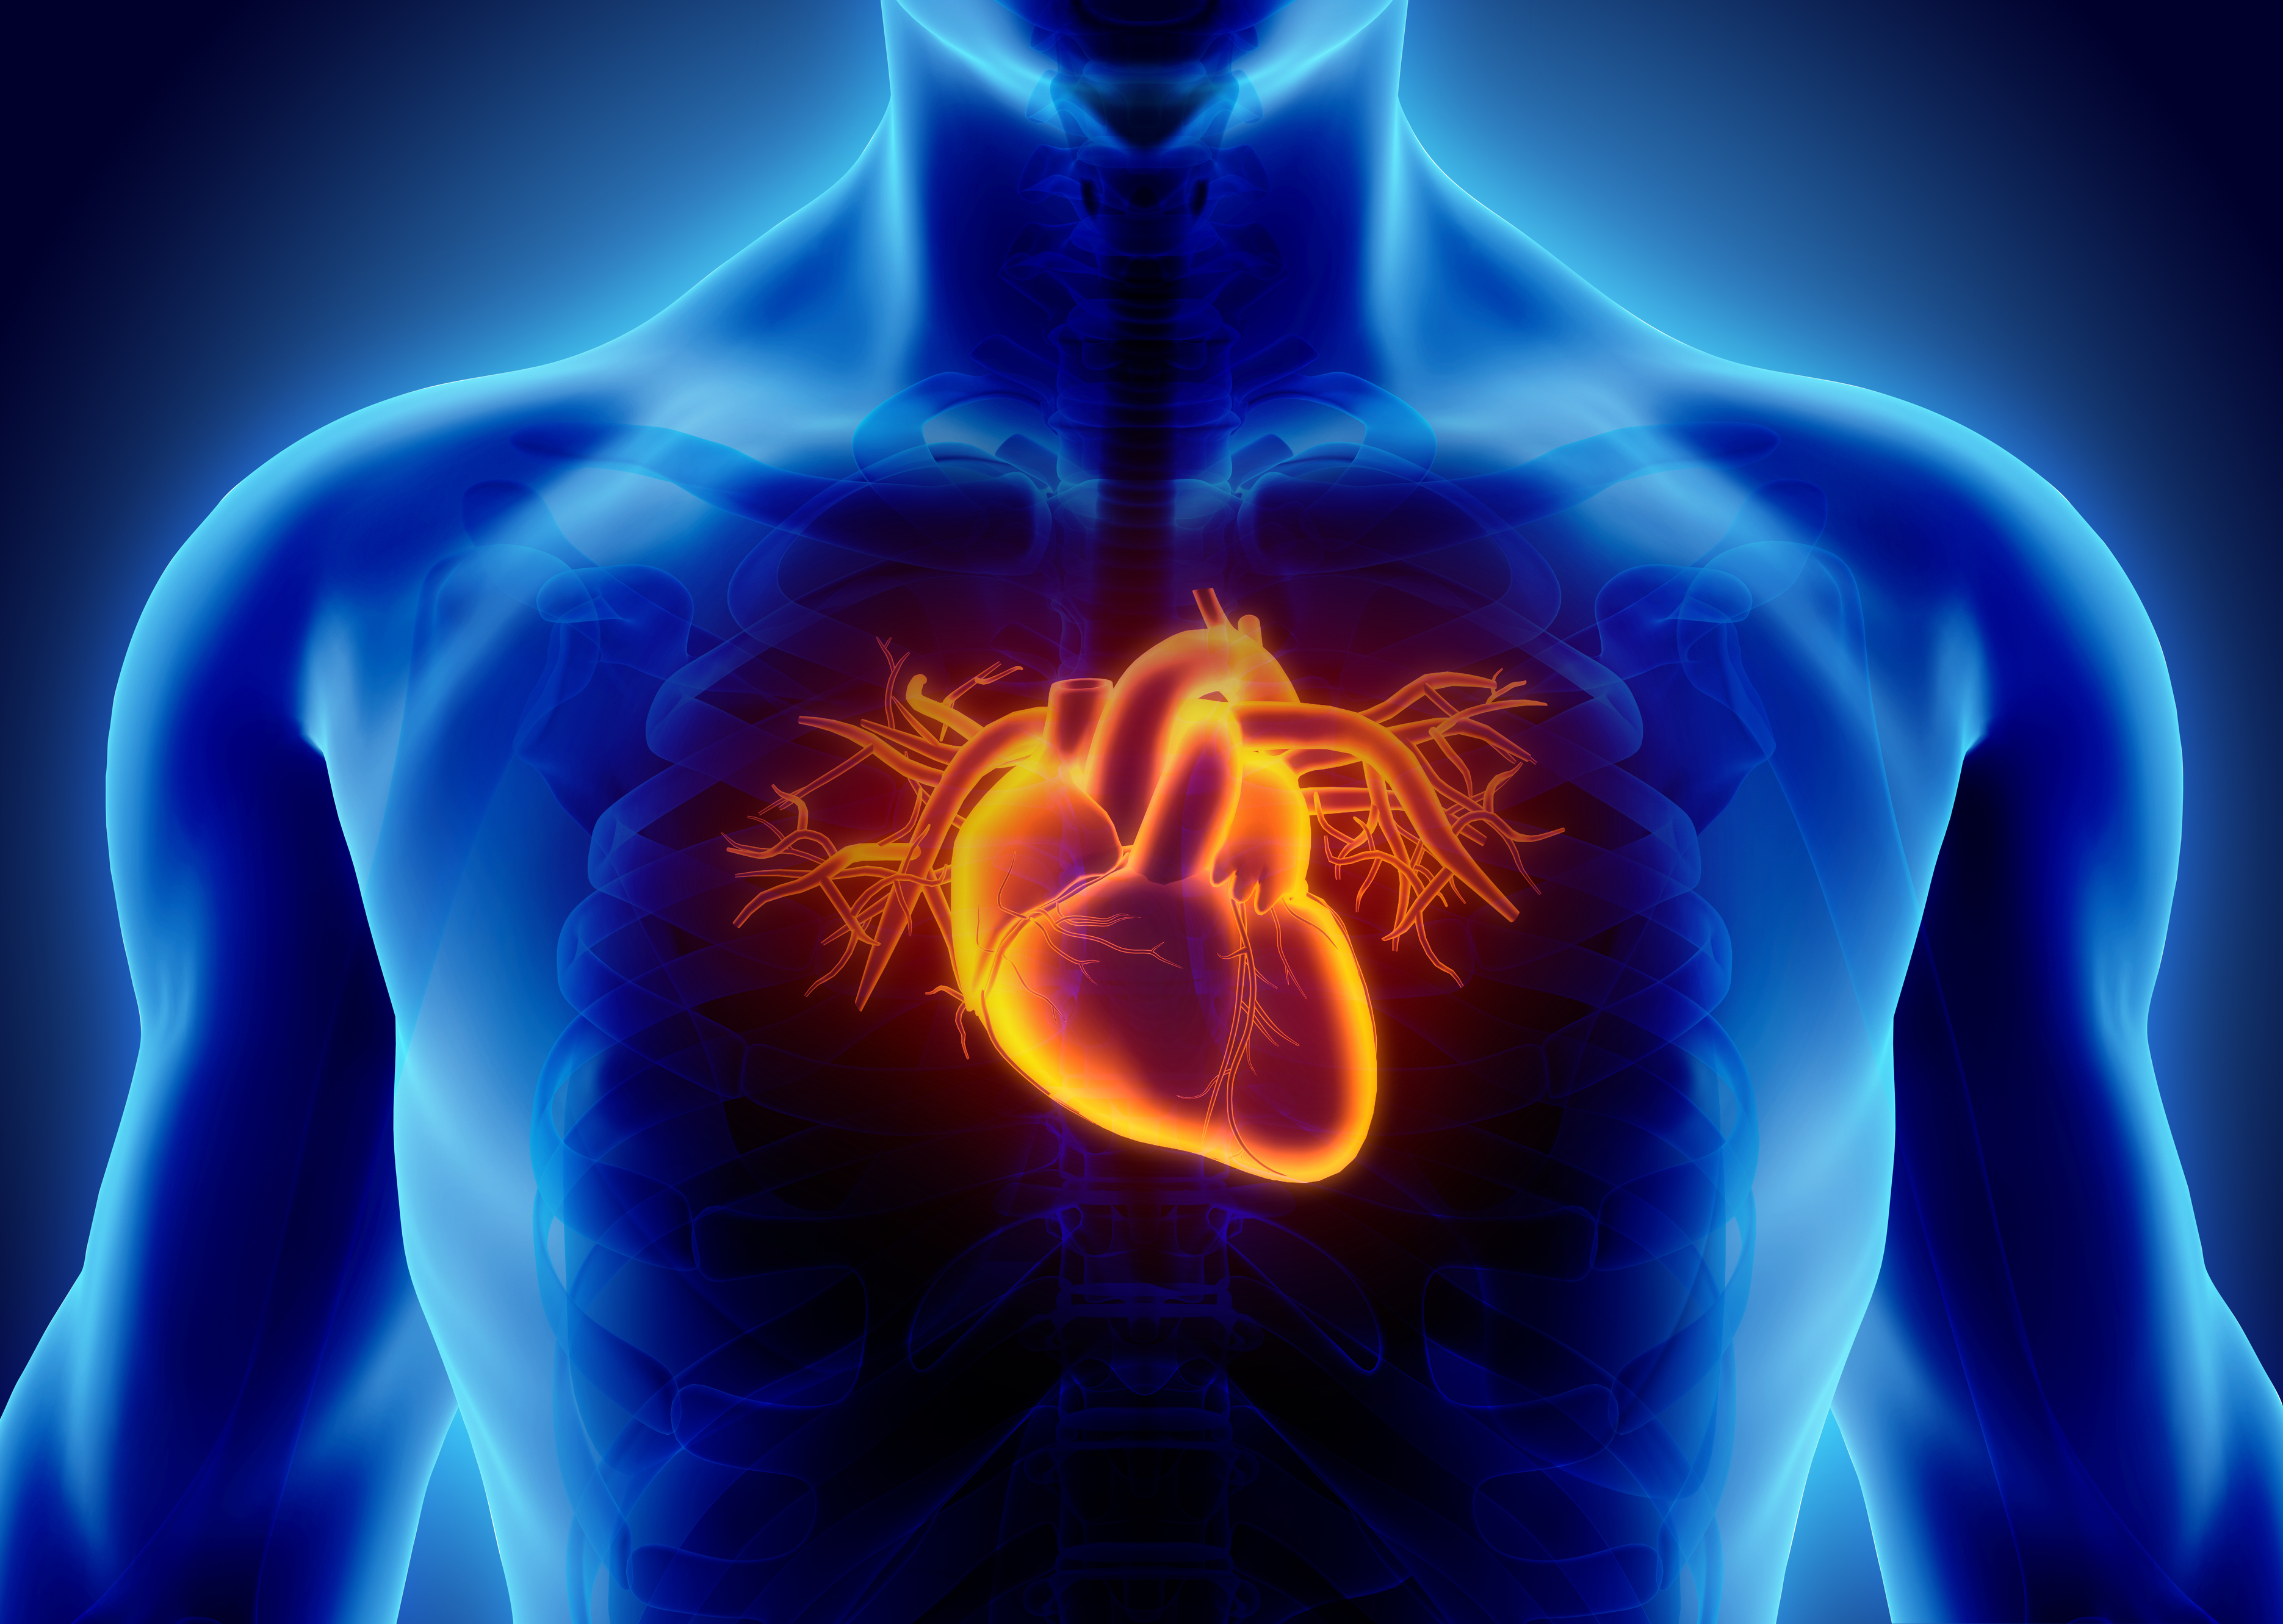 Study showed better survival outcomes in one type of heart failure